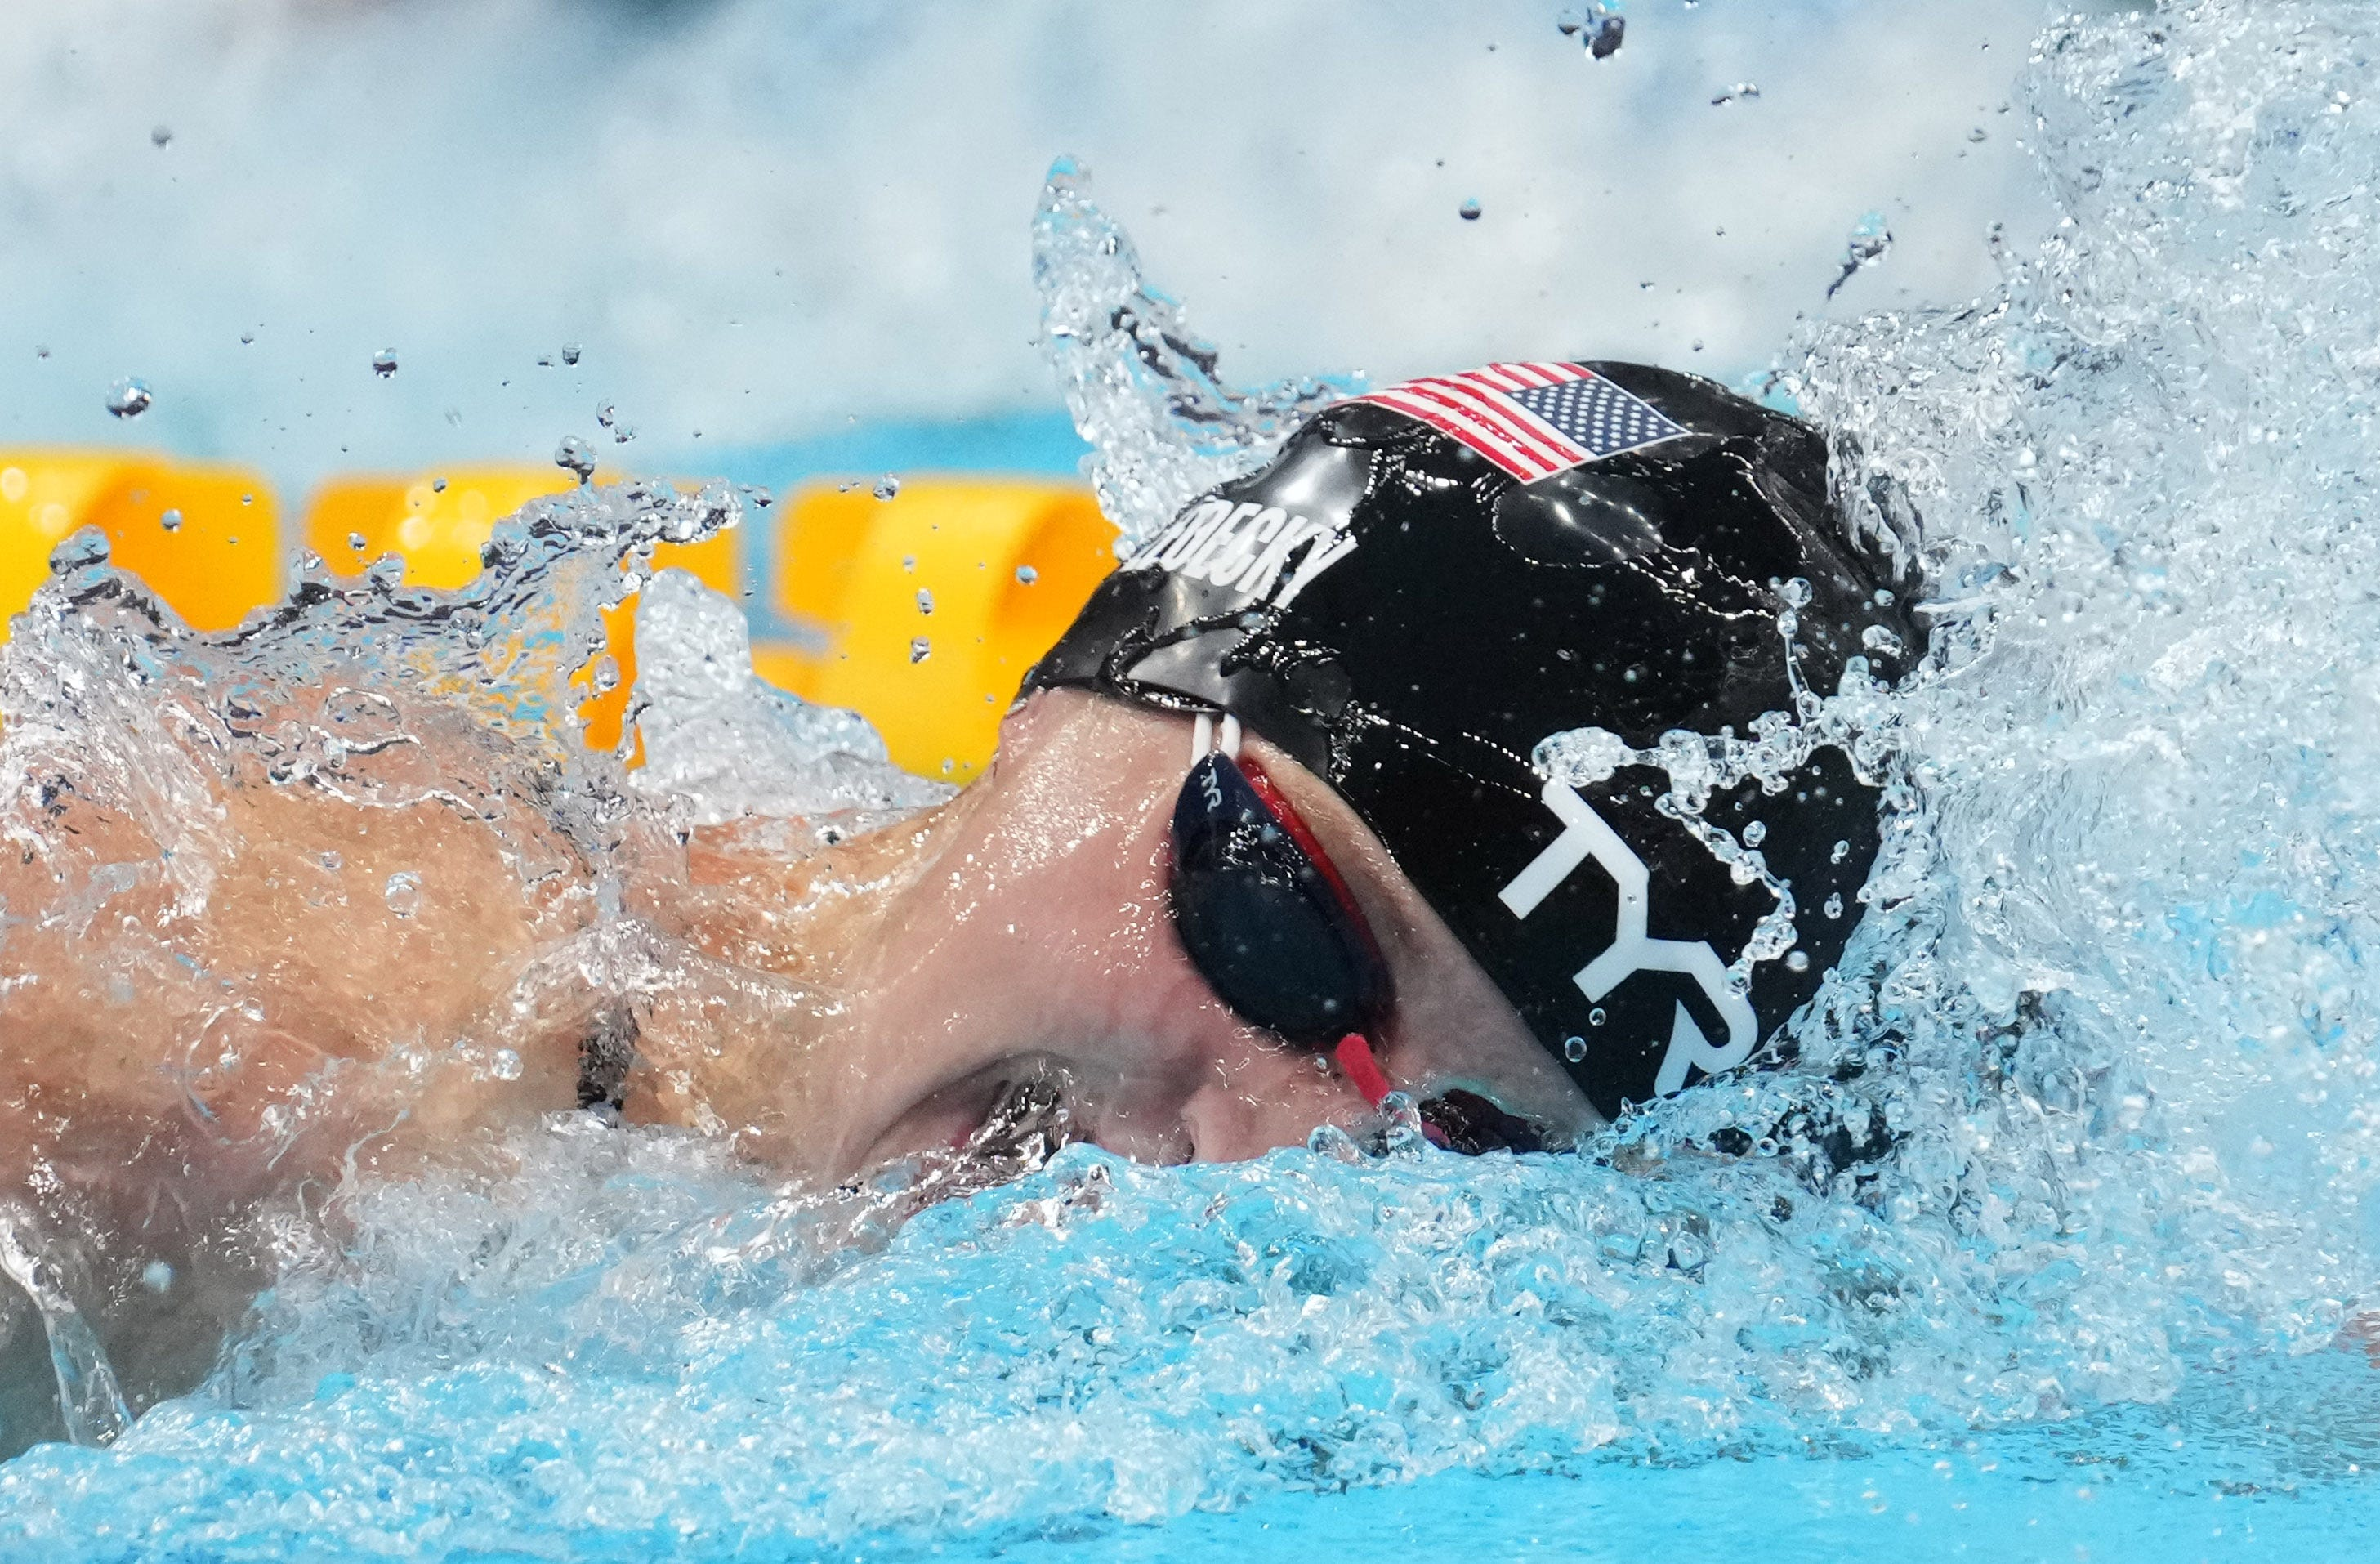 Katie Ledecky wins gold medal in 1,500 freestyle at Tokyo Olympics, US teammate Erica Sullivan takes silver